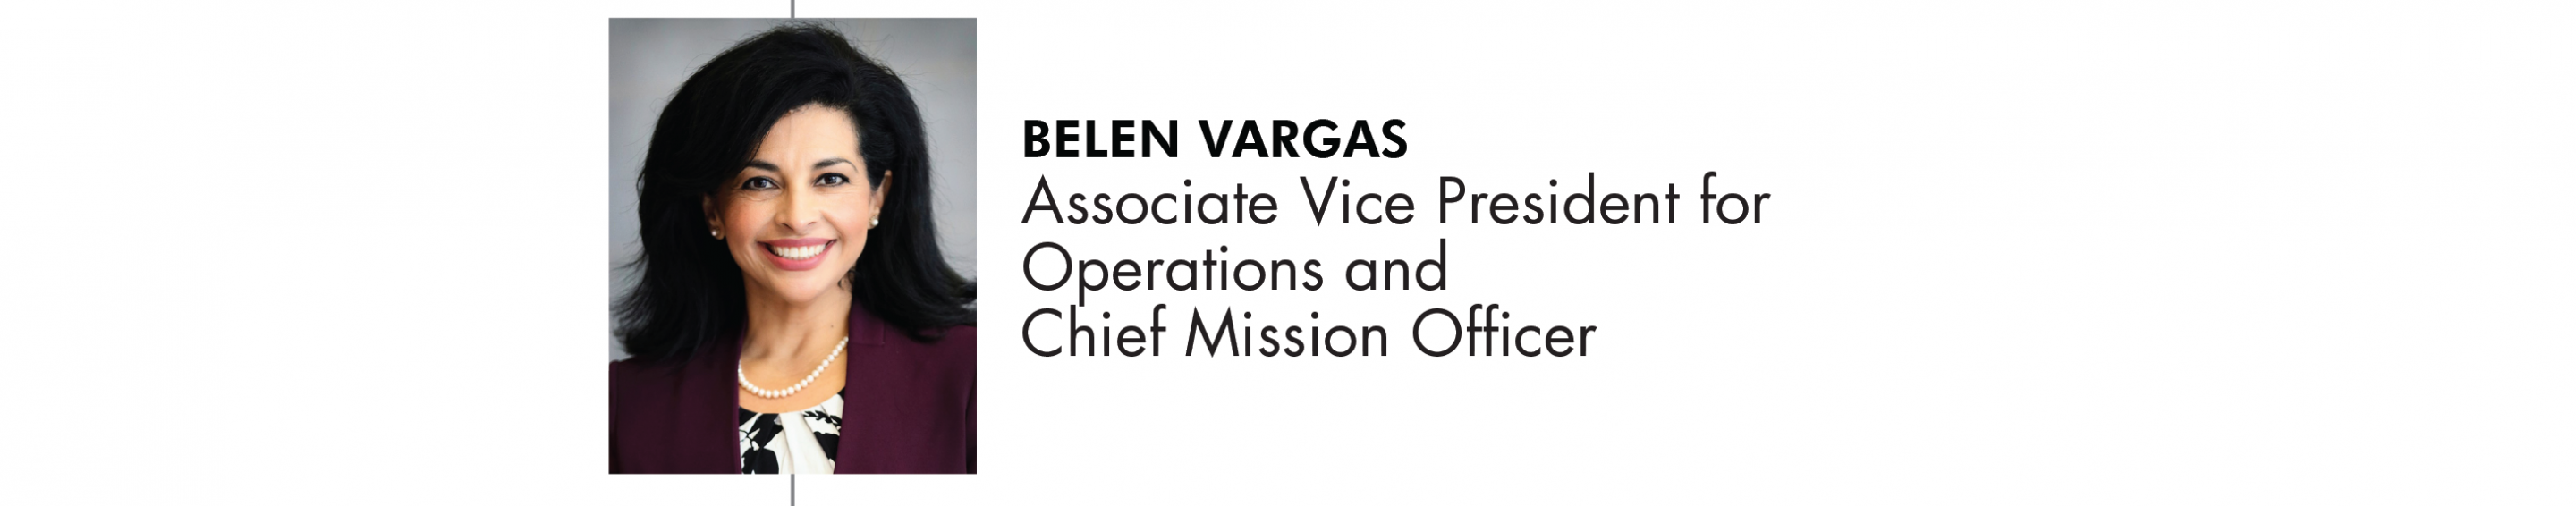 Belen Vargas Associate Vice President for Operations and Chief Mission Officer